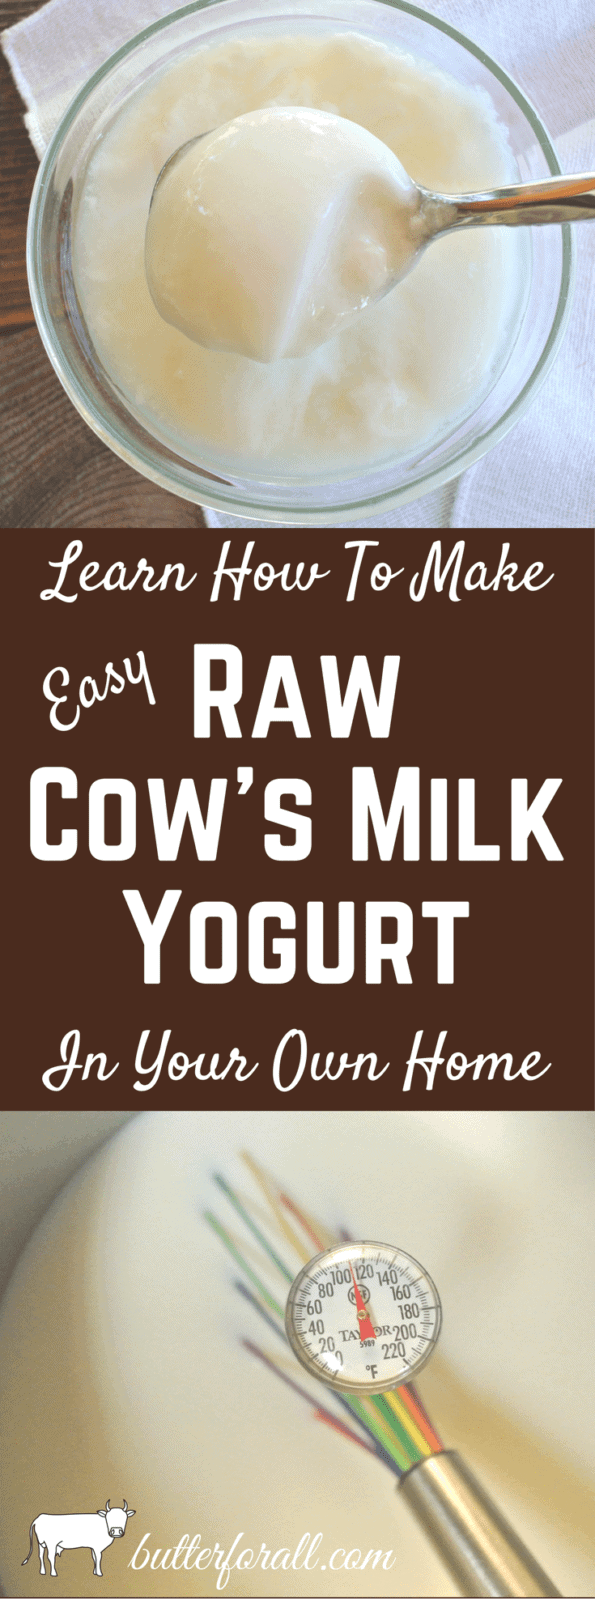 Learn To Make Easy Raw Cow's Milk Yogurt